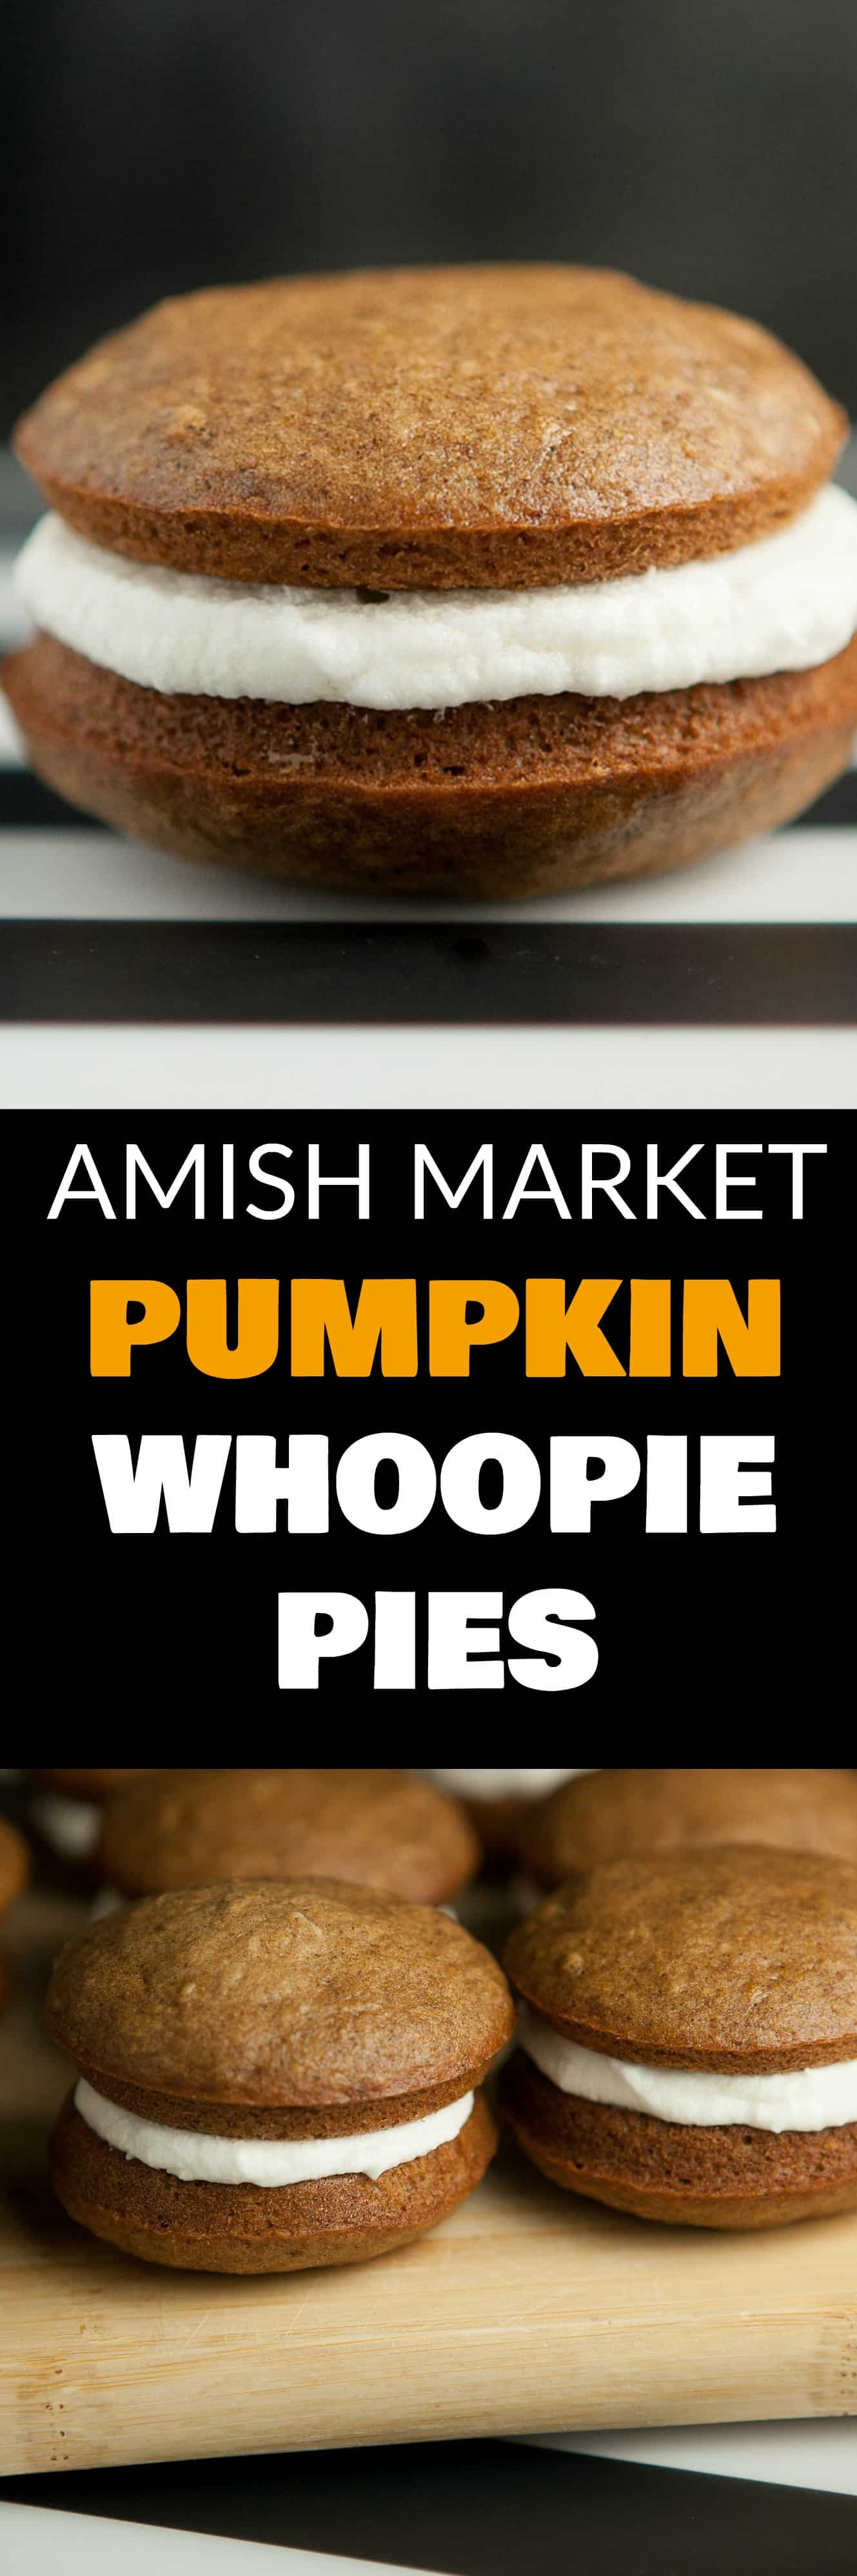 AMISH MARKET Pumpkin Whoopie Pies with Marshmallow Filling recipe! This is an easy pumpkin desserts recipe that makes moist pumpkin whoopie pies! These taste just like the whoopie pies you buy in Amish markets in Lancaster County! One of the BEST pumpkin desserts recipes!